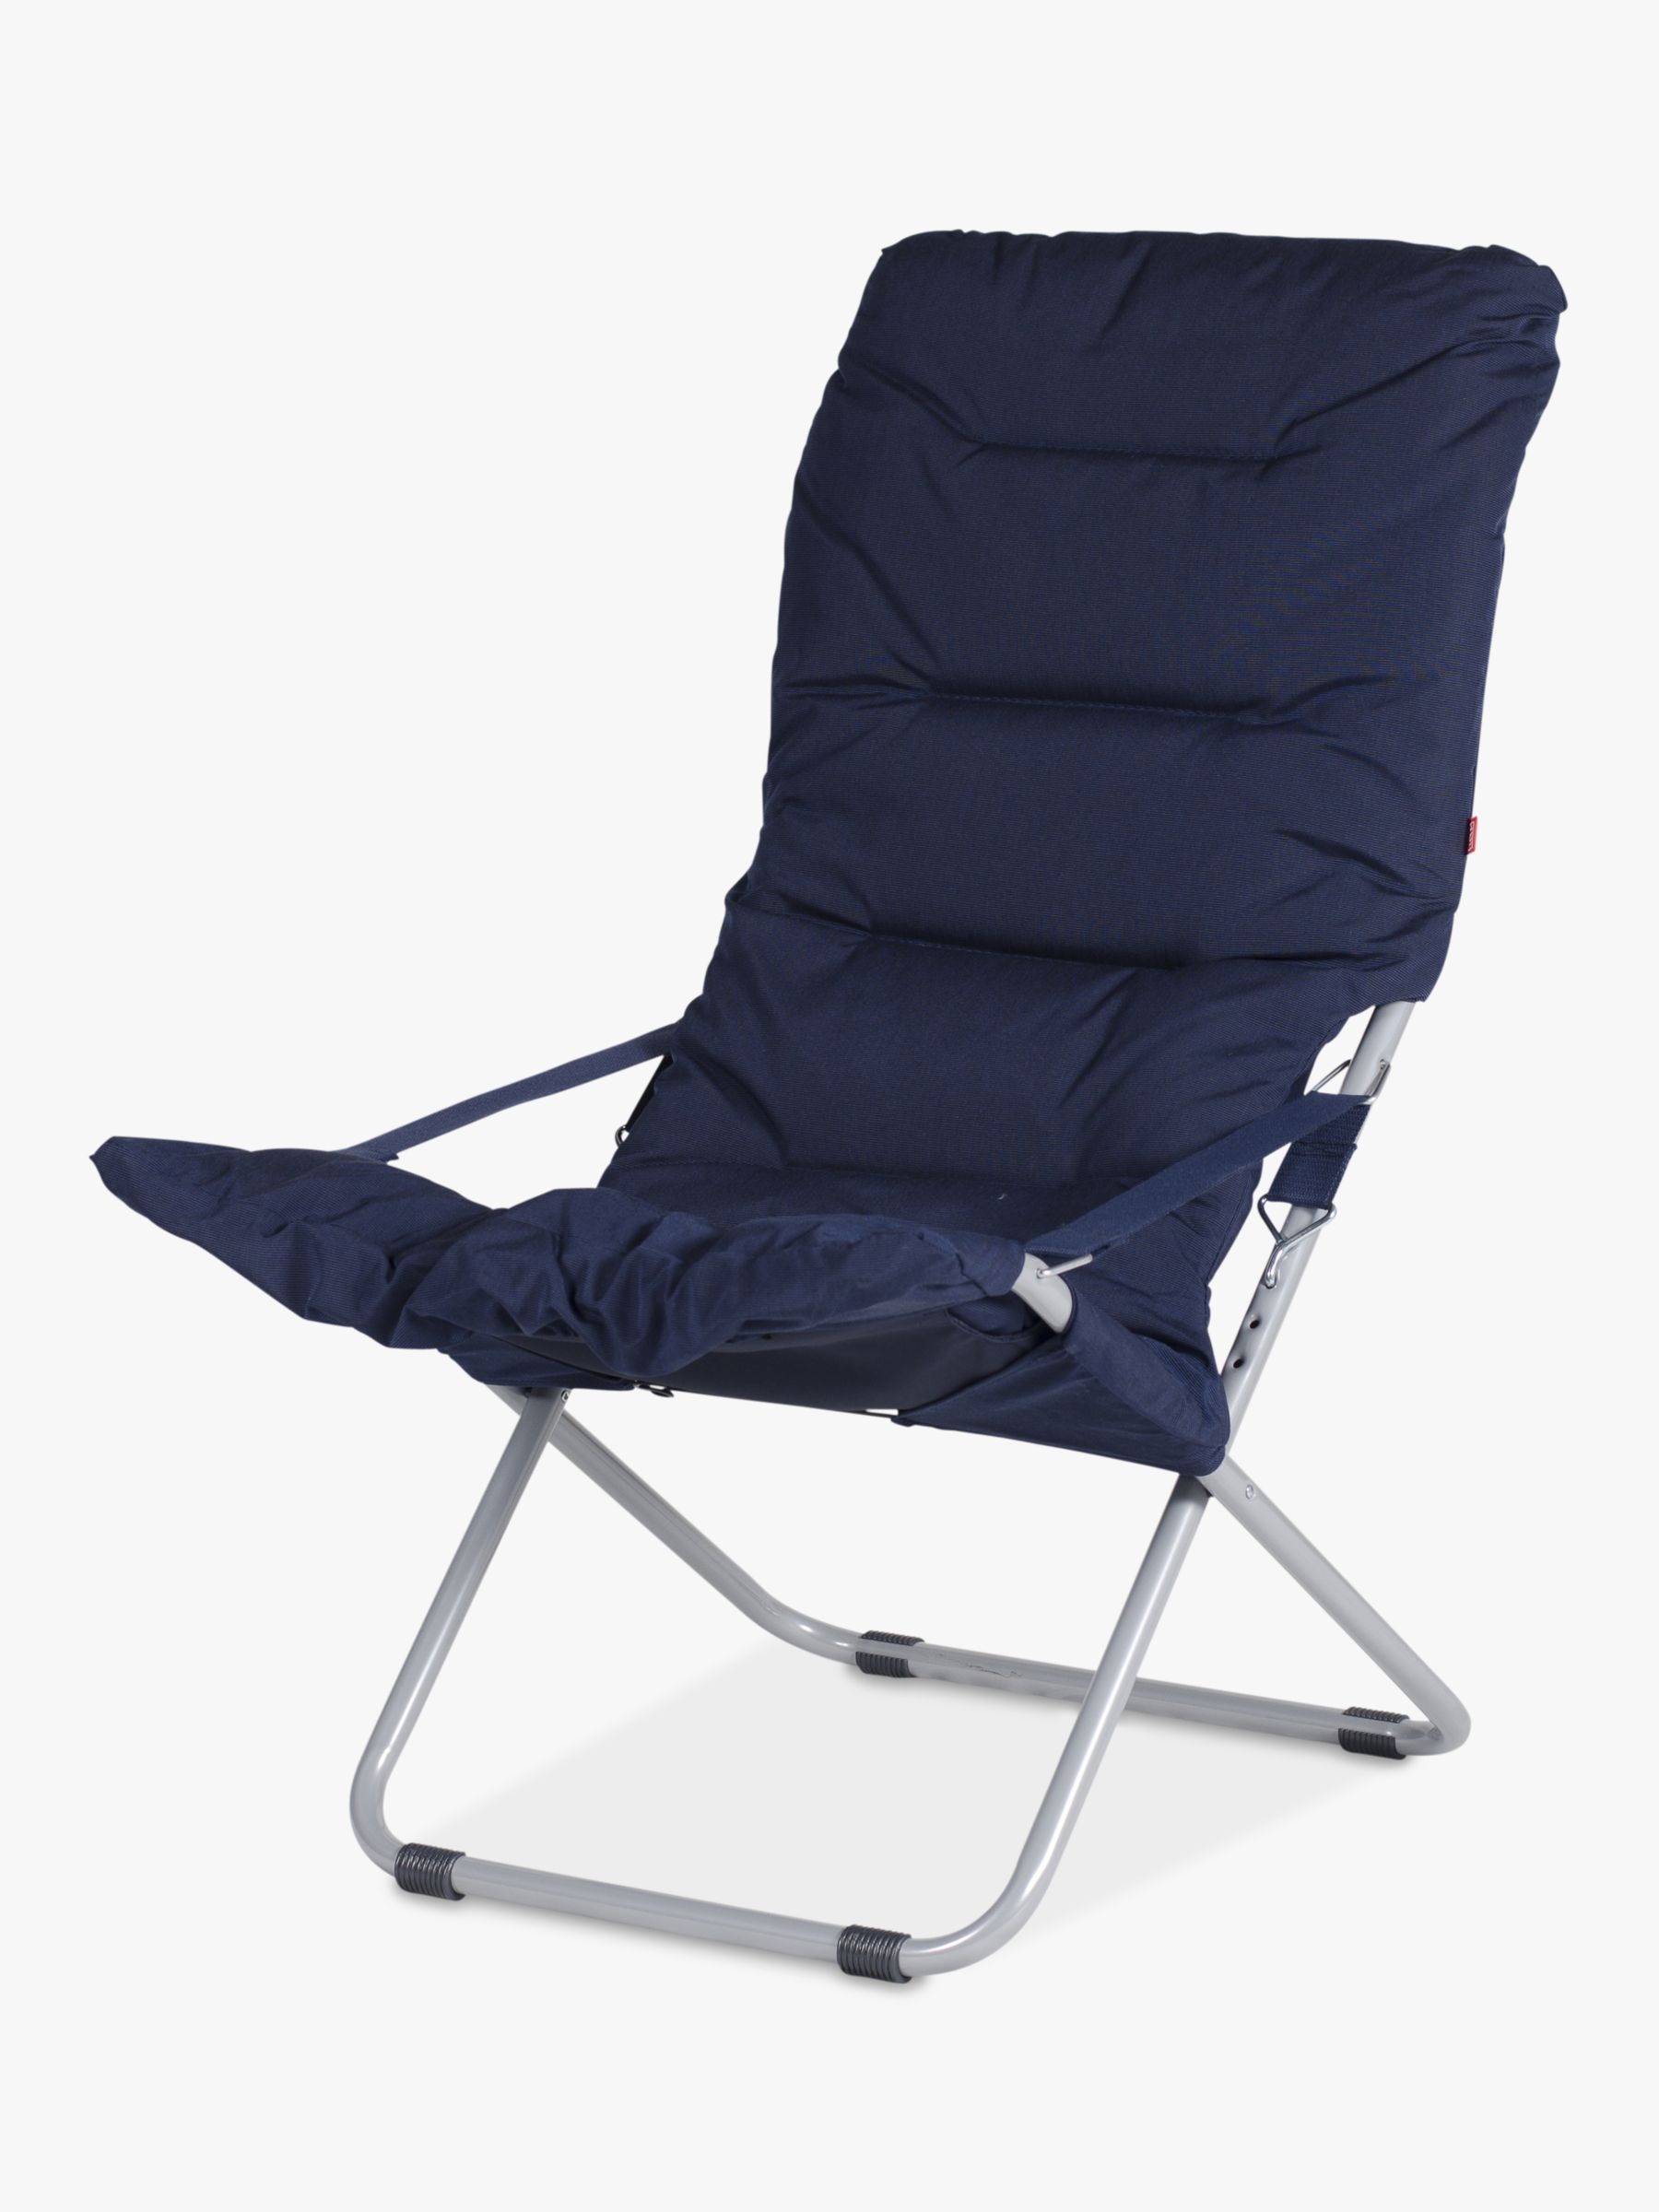 Unike Fiam Fiesta Outdoor Soft Armchair at John Lewis & Partners YO-74